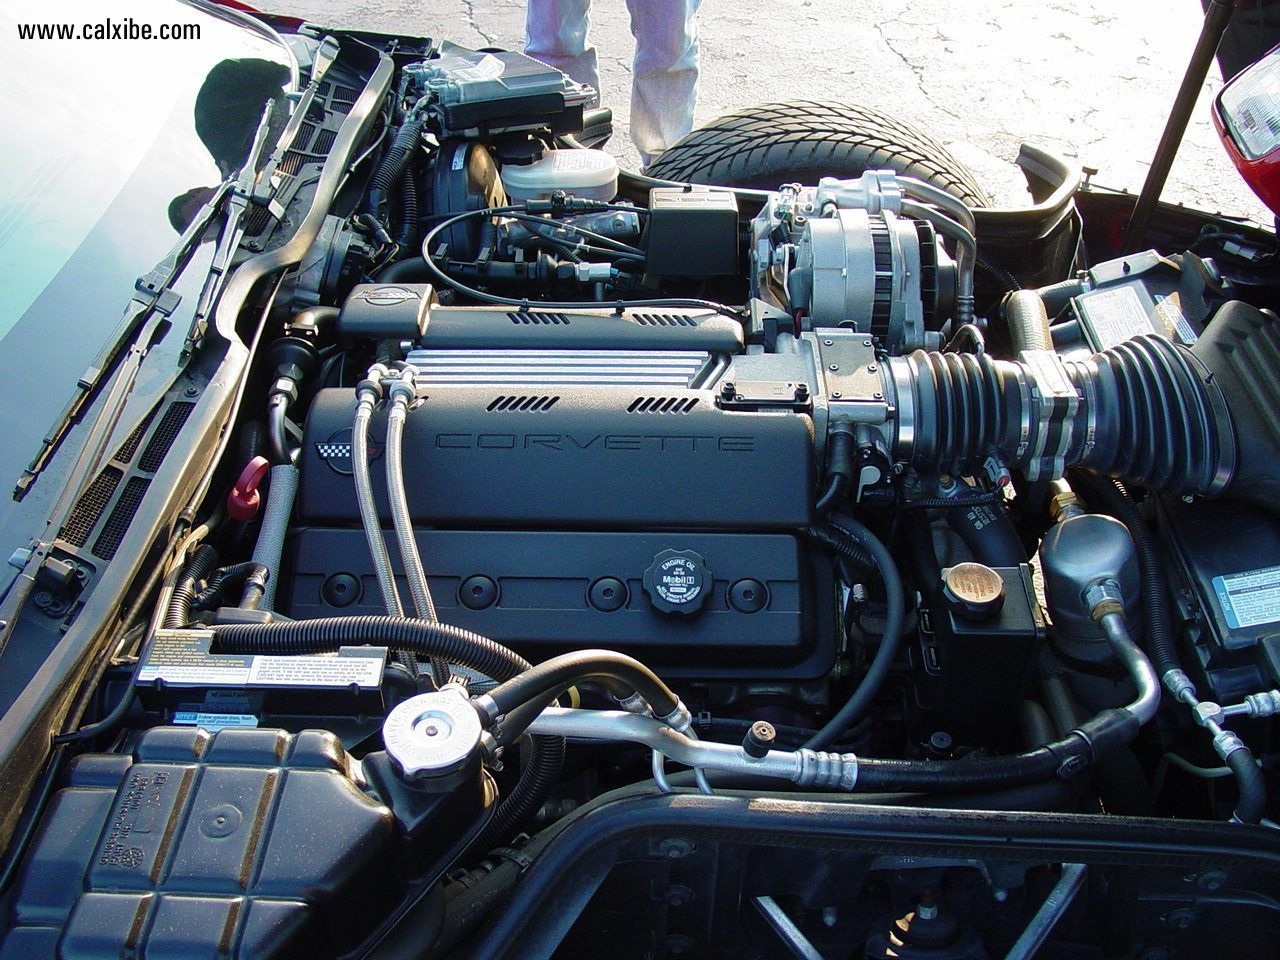 Motor 1996 Chevrolet Corvette Lt1 V8 Engine Picture Nr 13178